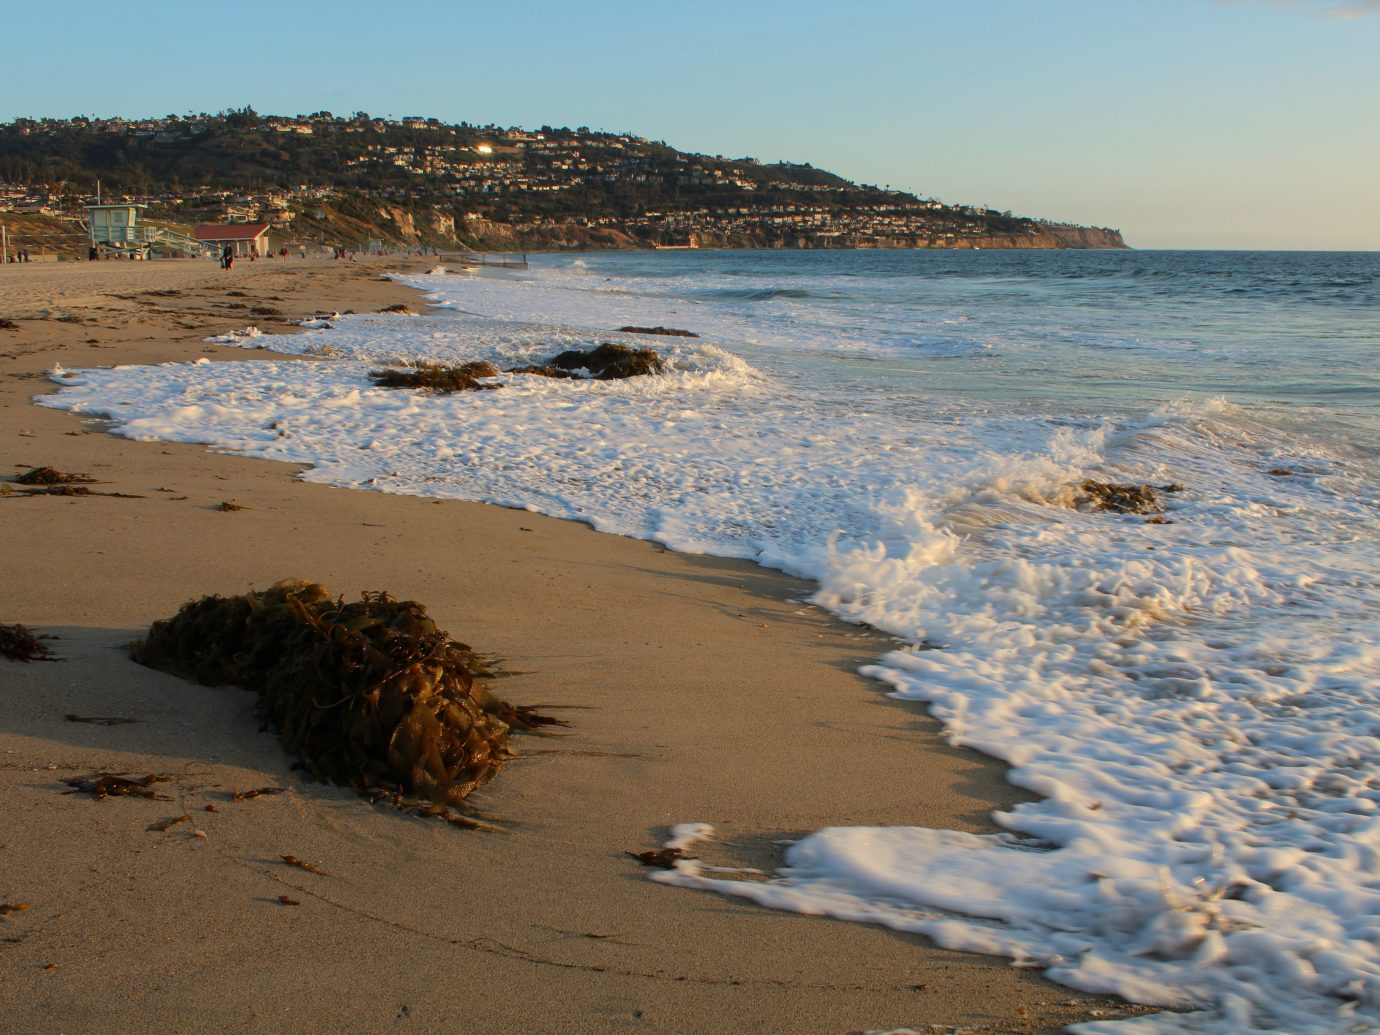 The scenic shoreline of Torrance Beach, with the Palos Verdes peninsula in the background.